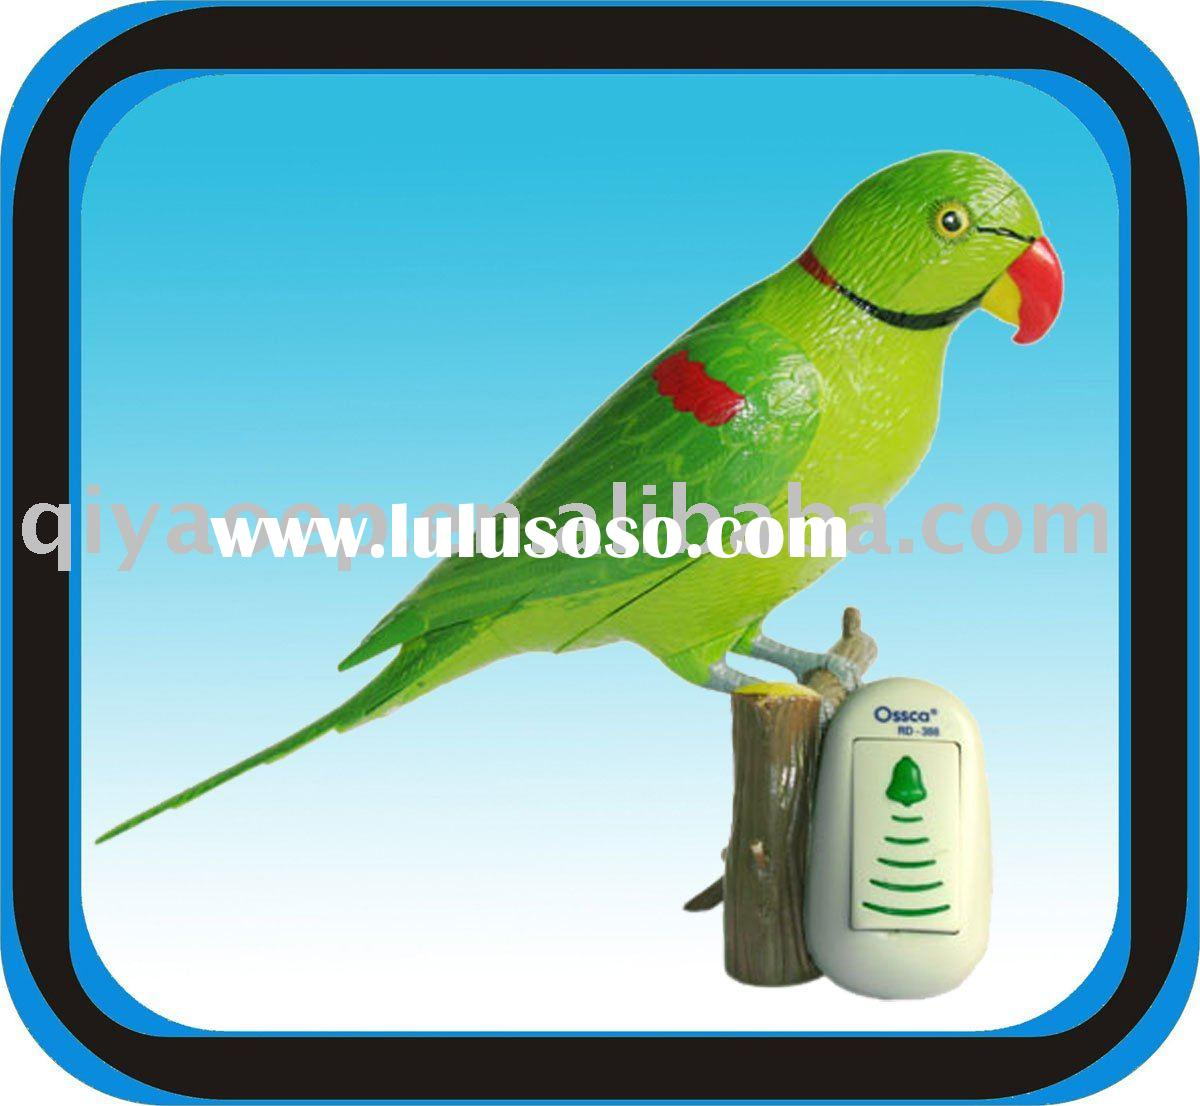 Recordable Doorbell Remote Control Digital Wireless Door Chime Hand-painted Parrot